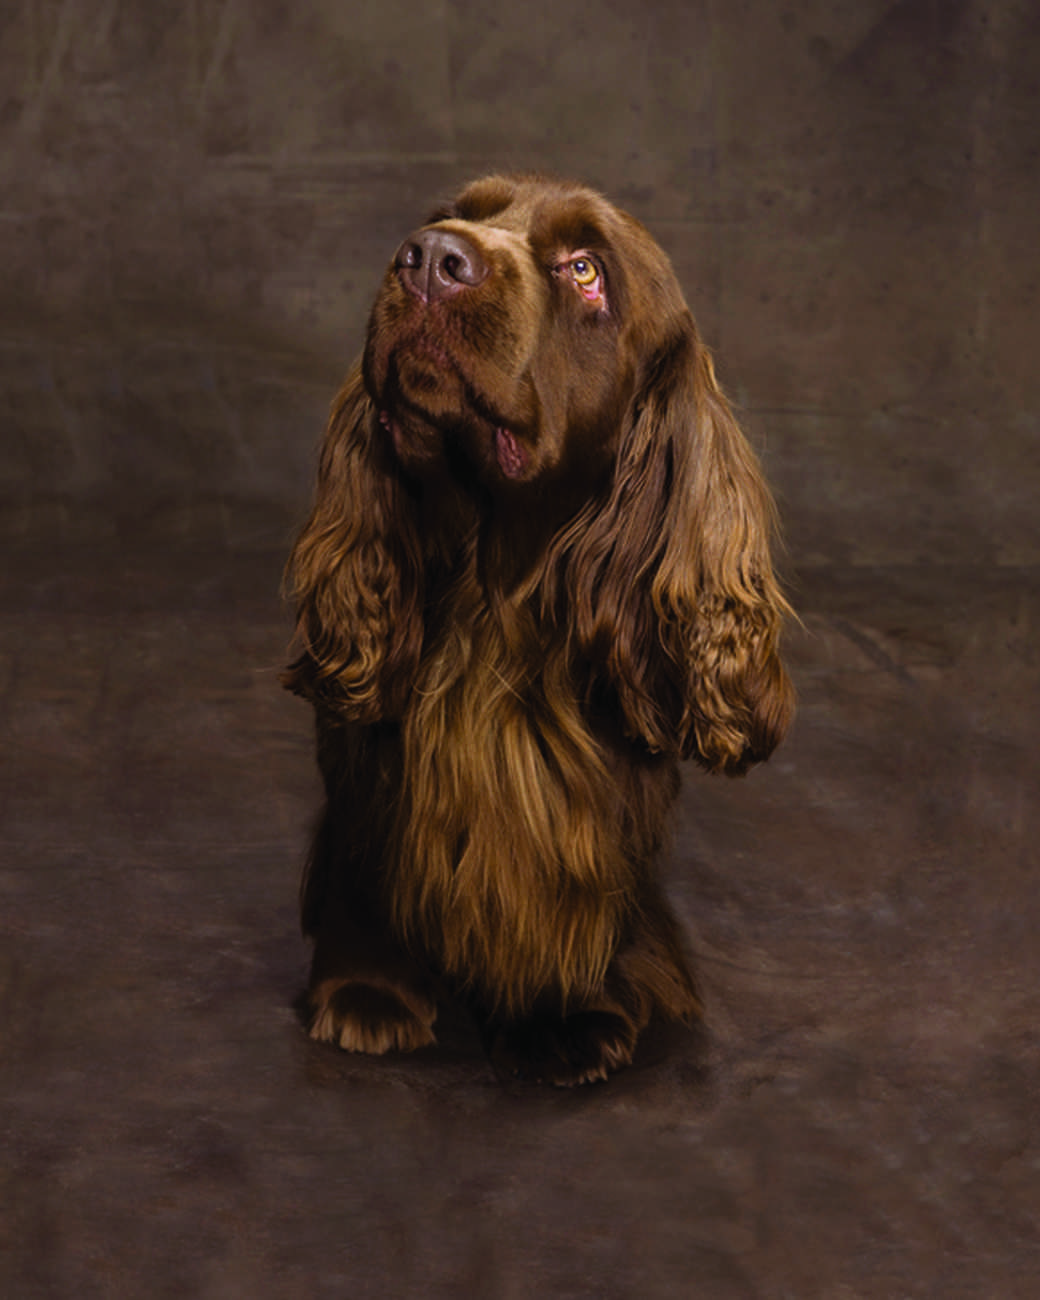 md105724_1110_sussexspaniel_00002.jpg